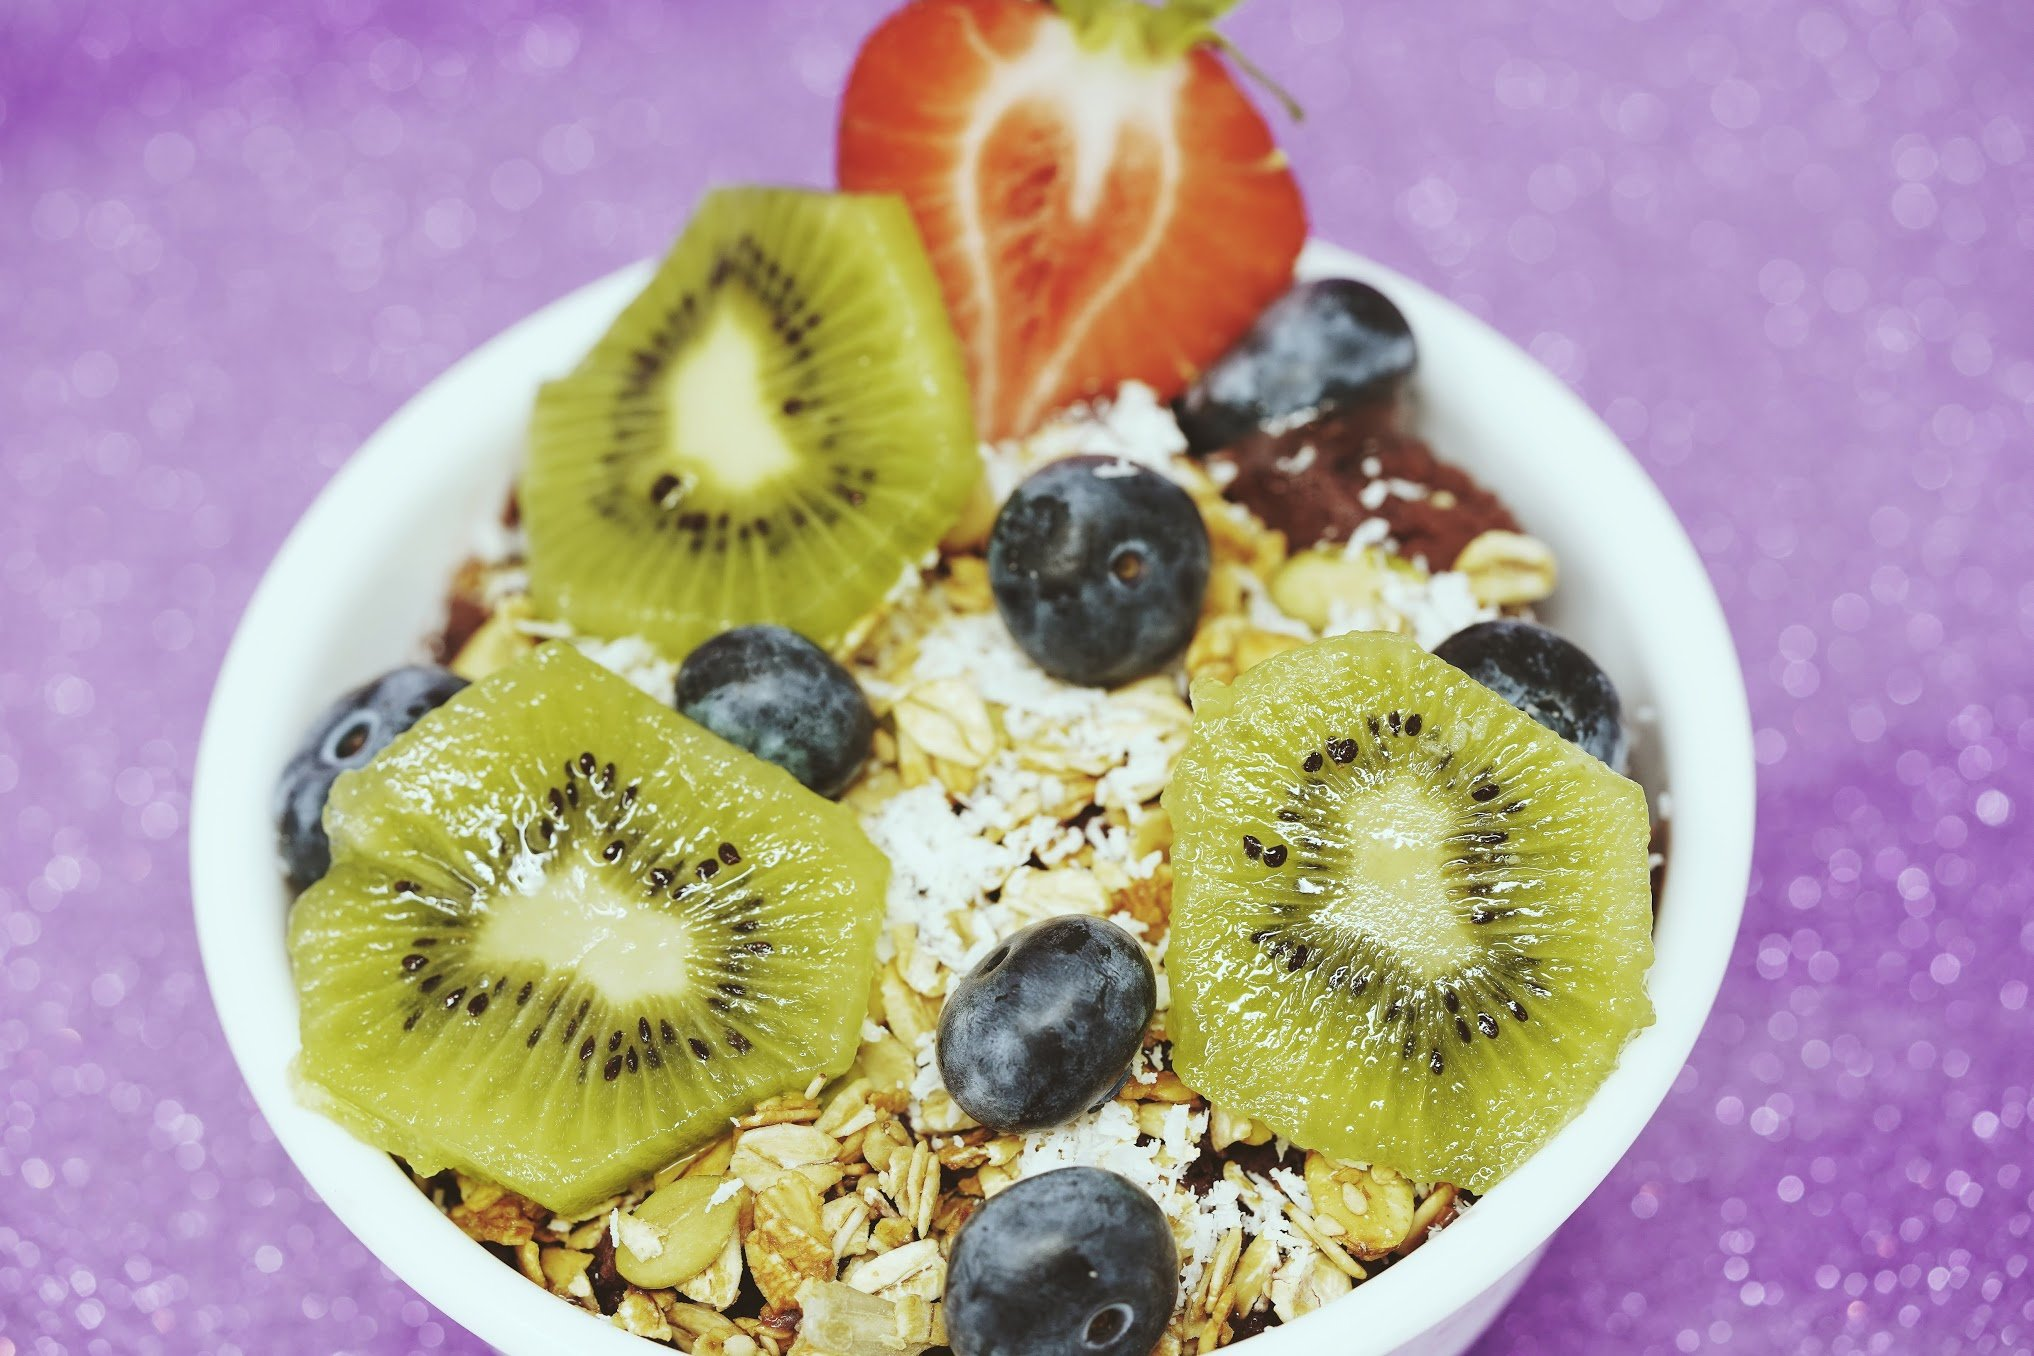 Best-Breakfast-Miami-Healthy-Breakfast-Acai-Bowl-SoBeVegan-10-6-19